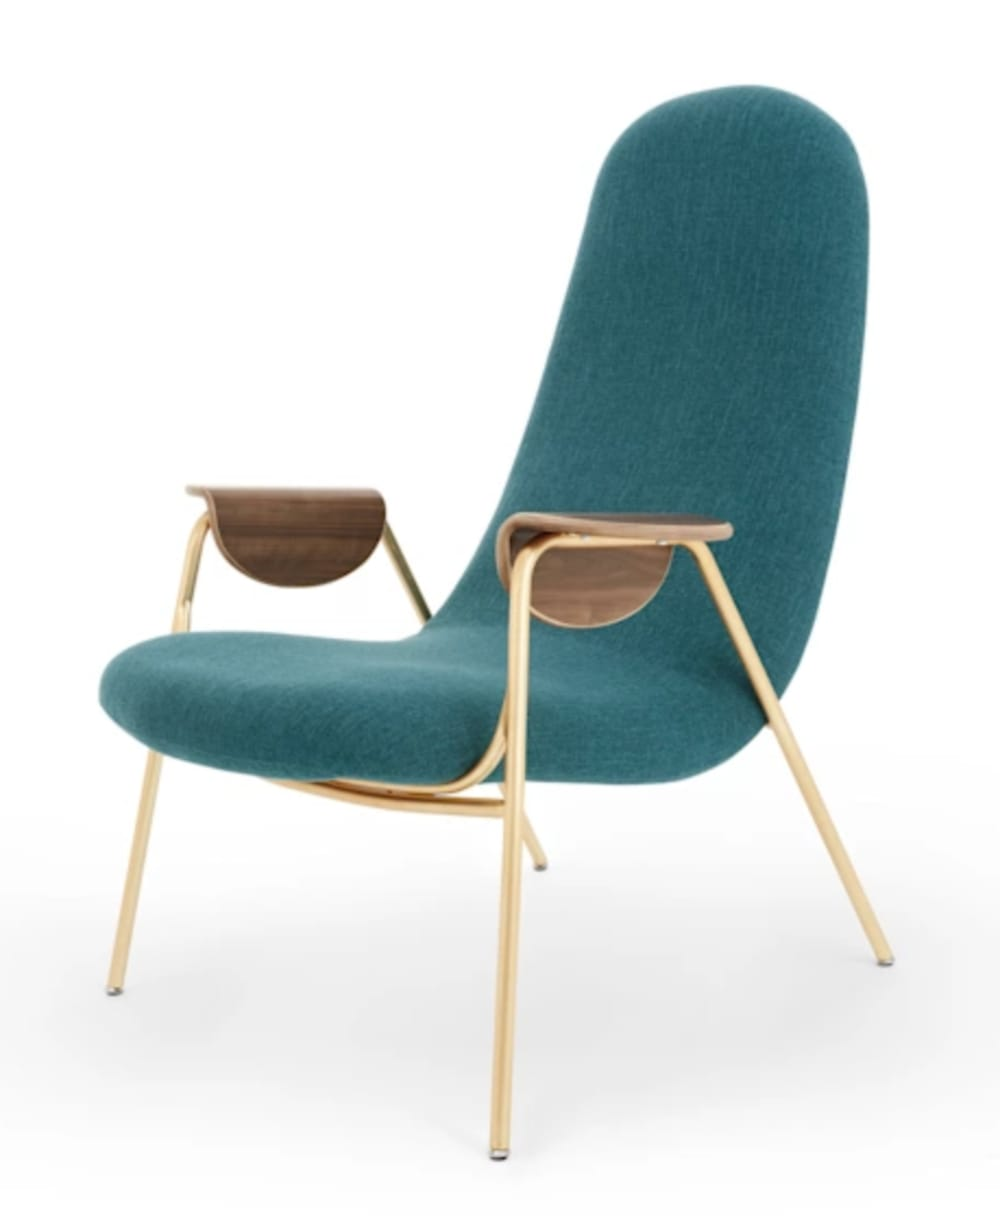 """Armchair with sculptural wooden armrests.<span class=""""sr-only""""> (opened in a new window/tab)</span>"""